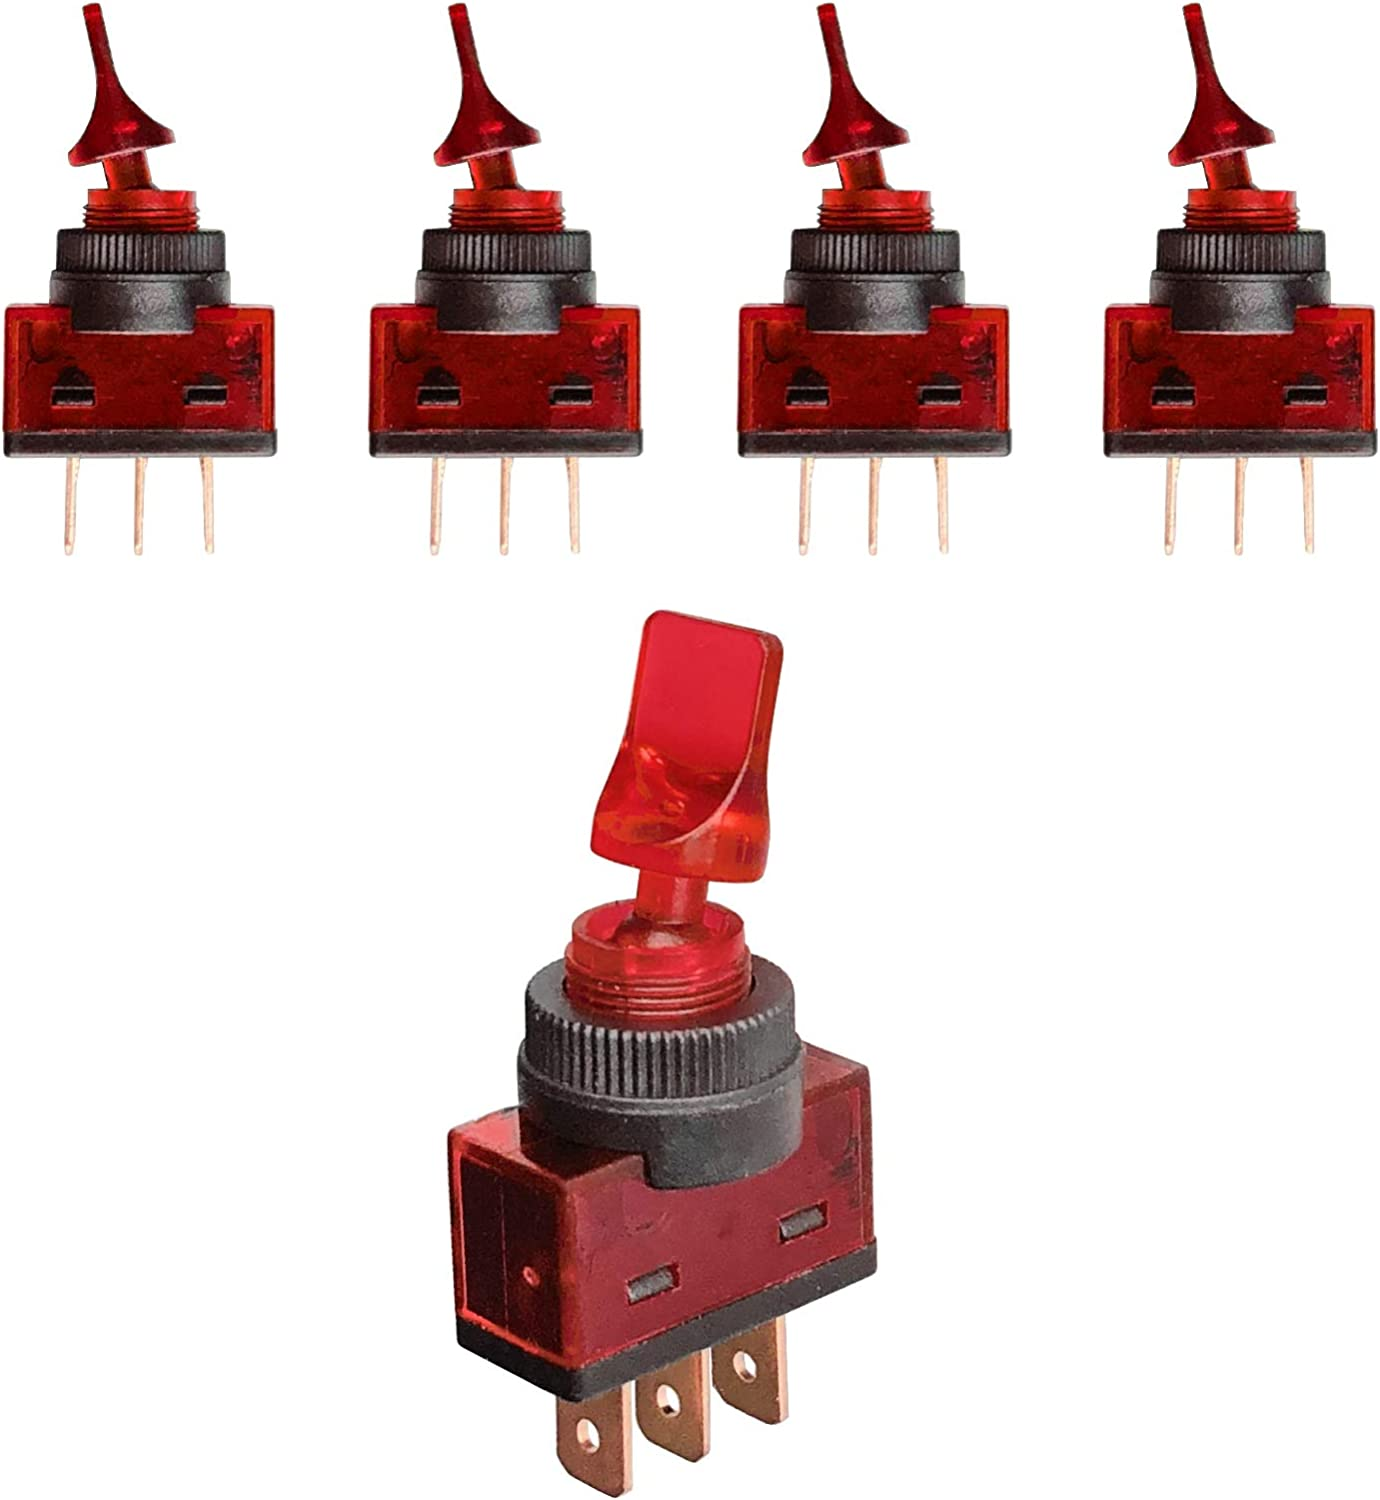 MGI SpeedWare Lighted Duckbill Toggle Switch 12vDC SPST ON-OFF 5-Pack Red